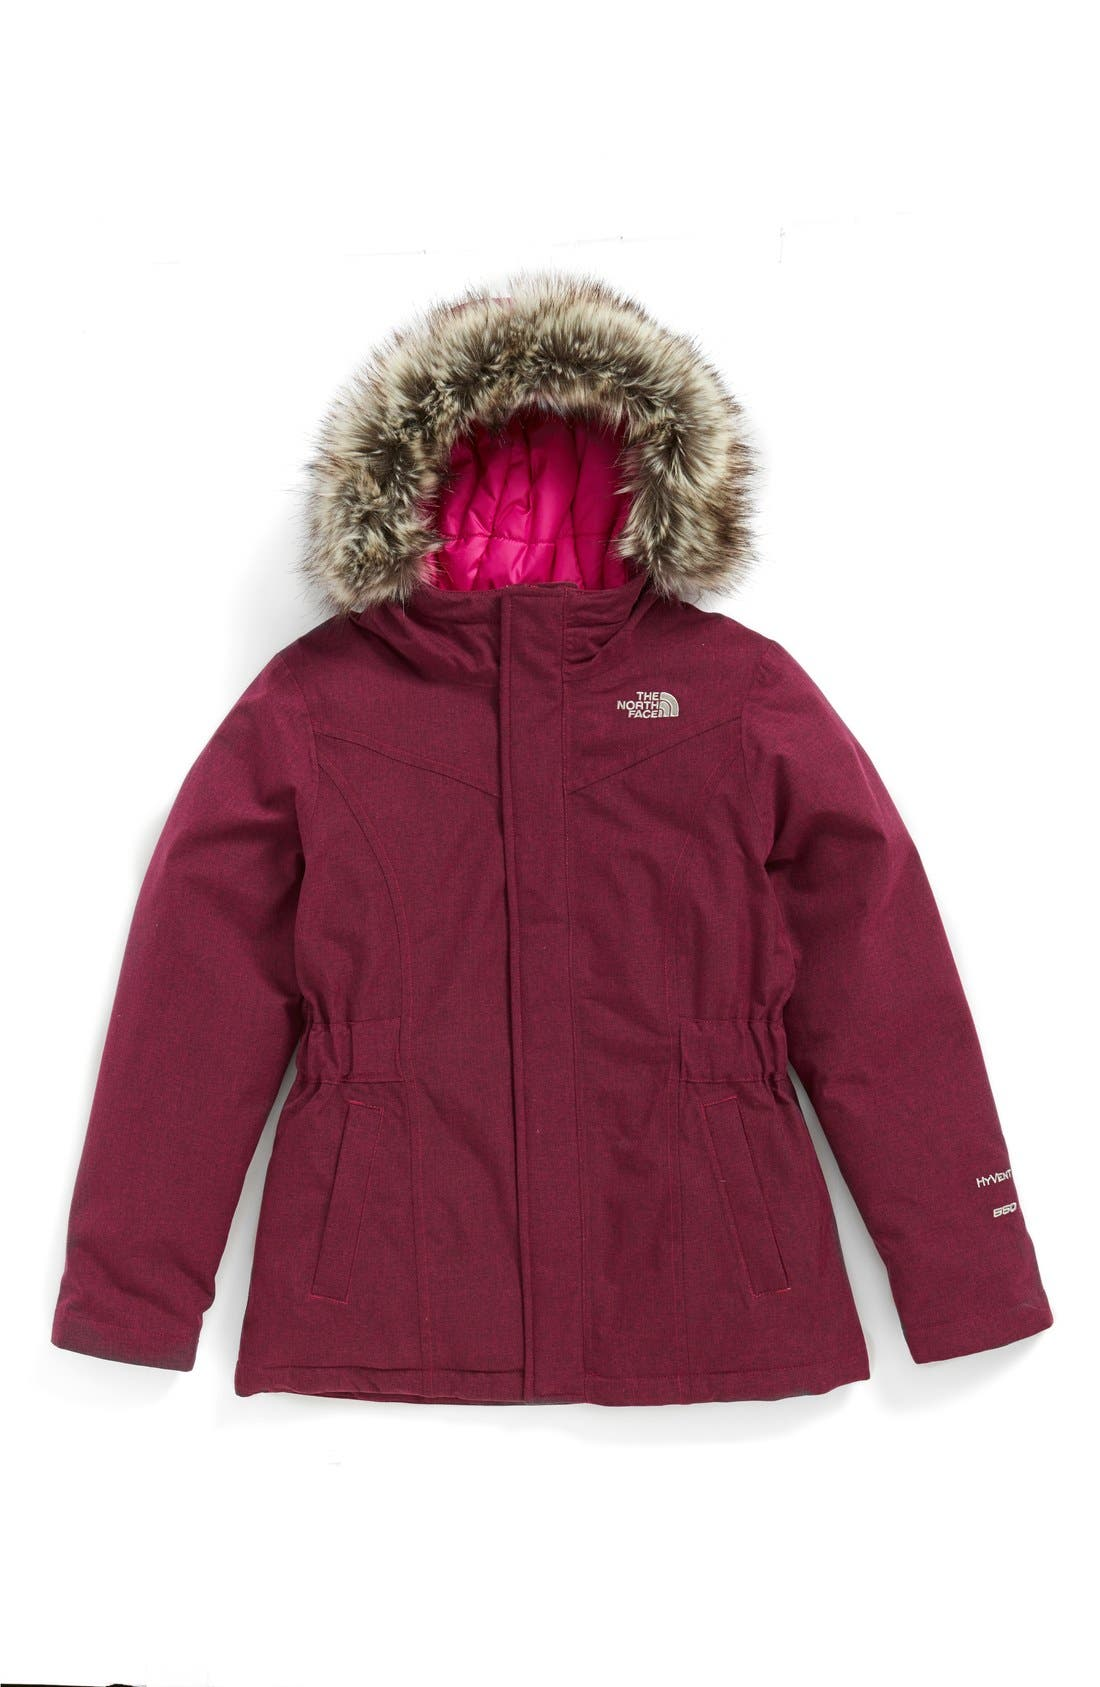 Alternate Image 1 Selected - The North Face 'Greenland' Waterproof Down Jacket (Big Girls)